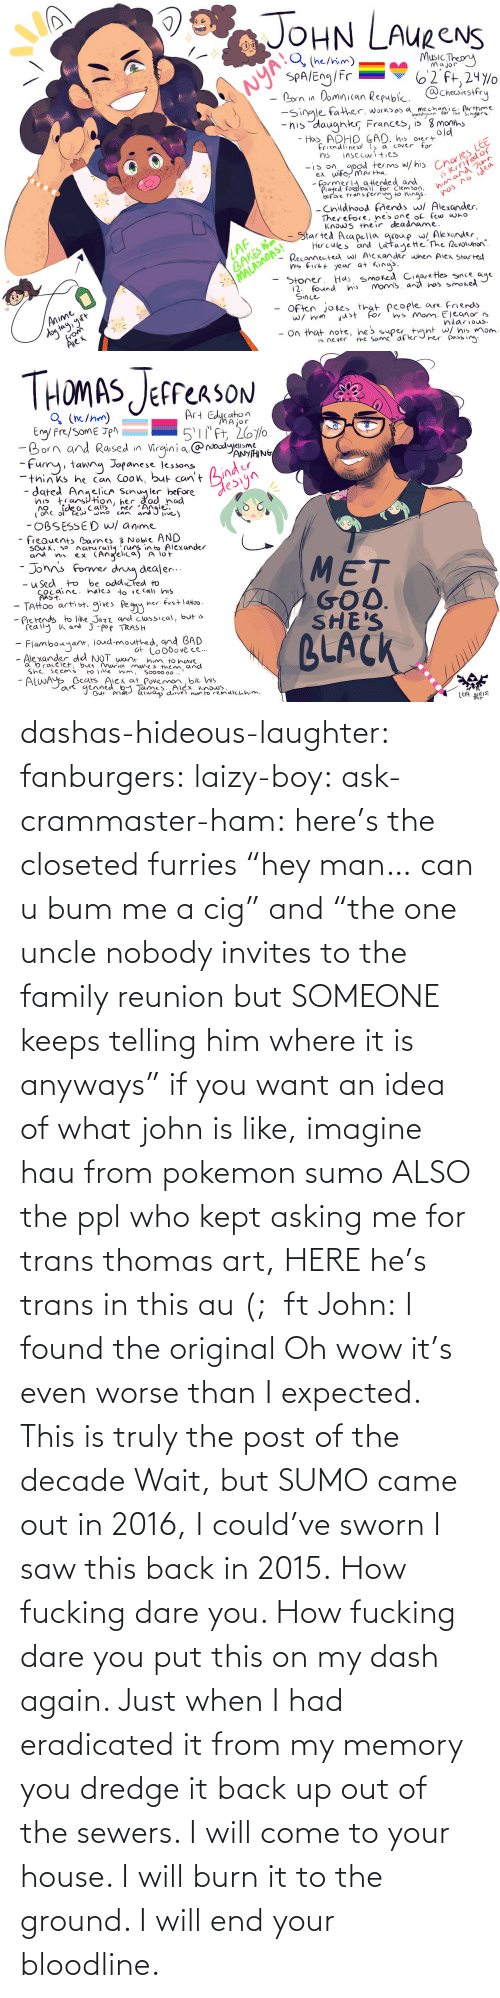 "Me: dashas-hideous-laughter:  fanburgers:   laizy-boy:   ask-crammaster-ham:   here's the closeted furries ""hey man… can u bum me a cig"" and ""the one uncle nobody invites to the family reunion but SOMEONE keeps telling him where it is anyways""   if you want an idea of what john is like, imagine hau from pokemon sumo ALSO the ppl who kept asking me for trans thomas art, HERE he's trans in this au (;  ft John:    I found the original     Oh wow it's even worse than I expected. This is truly the post of the decade    Wait, but SUMO came out in 2016, I could've sworn I saw this back in 2015.    How fucking dare you. How fucking dare you put this on my dash again. Just when I had eradicated it from my memory you dredge it back up out of the sewers. I will come to your house. I will burn it to the ground. I will end your bloodline."